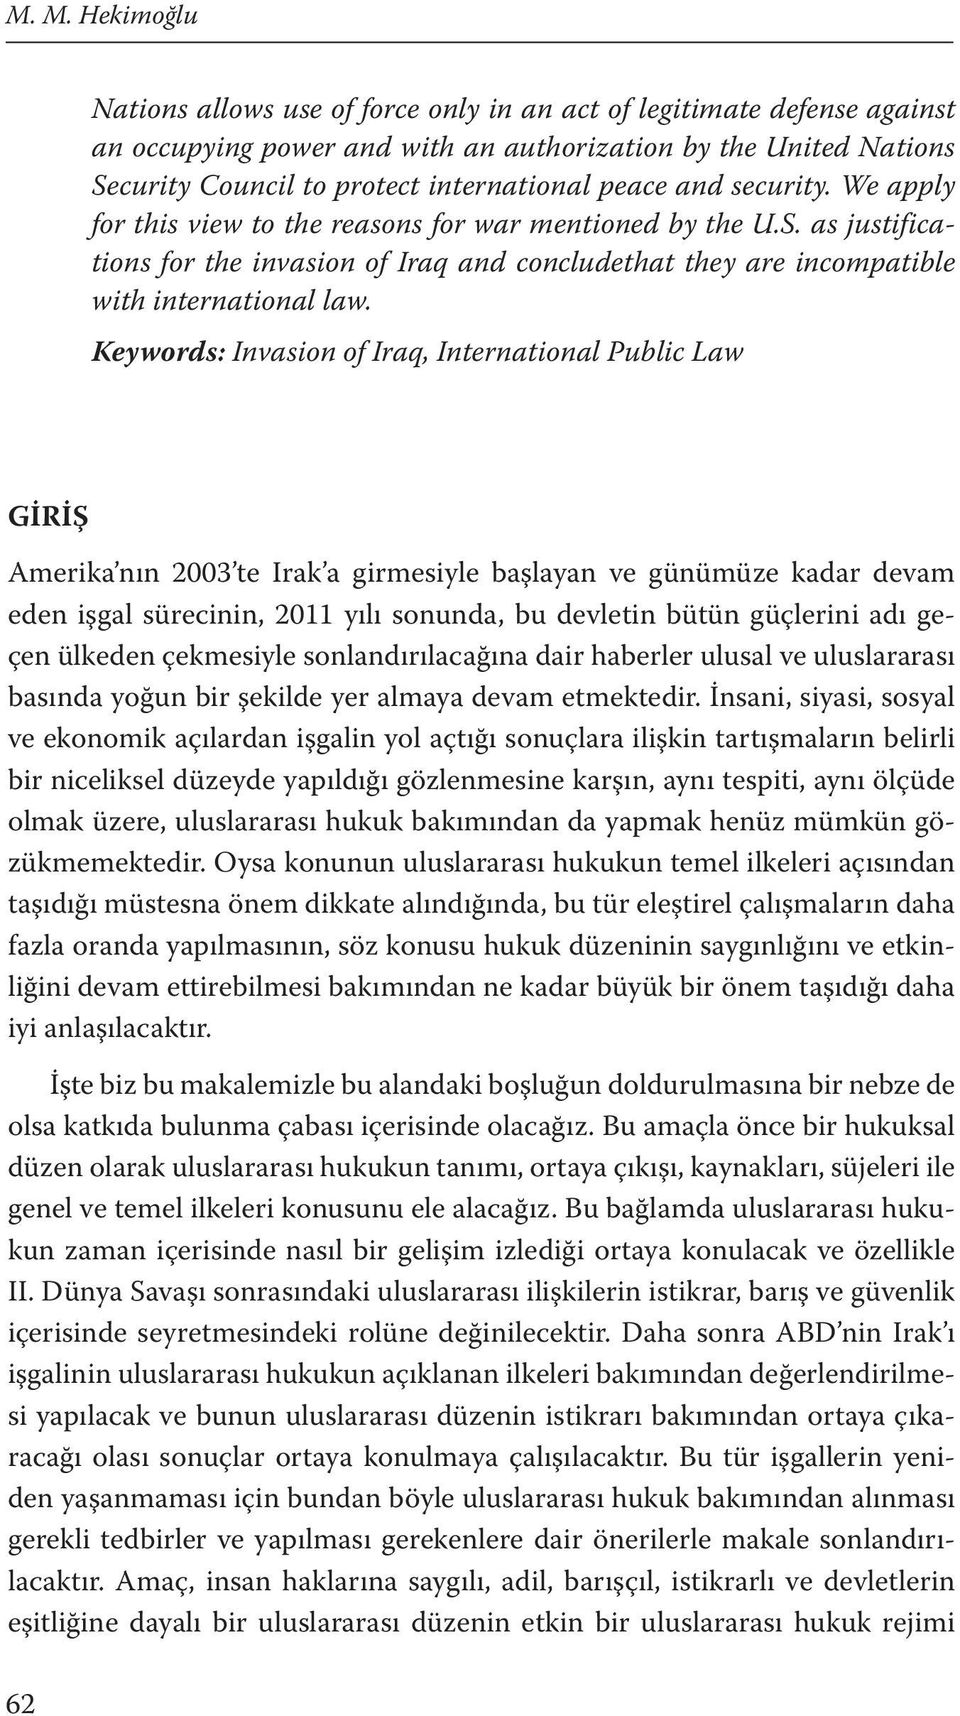 Keywords: Invasion of Iraq, International Public Law GİRİŞ Amerika nın 2003 te Irak a girmesiyle başlayan ve günümüze kadar devam eden işgal sürecinin, 2011 yılı sonunda, bu devletin bütün güçlerini